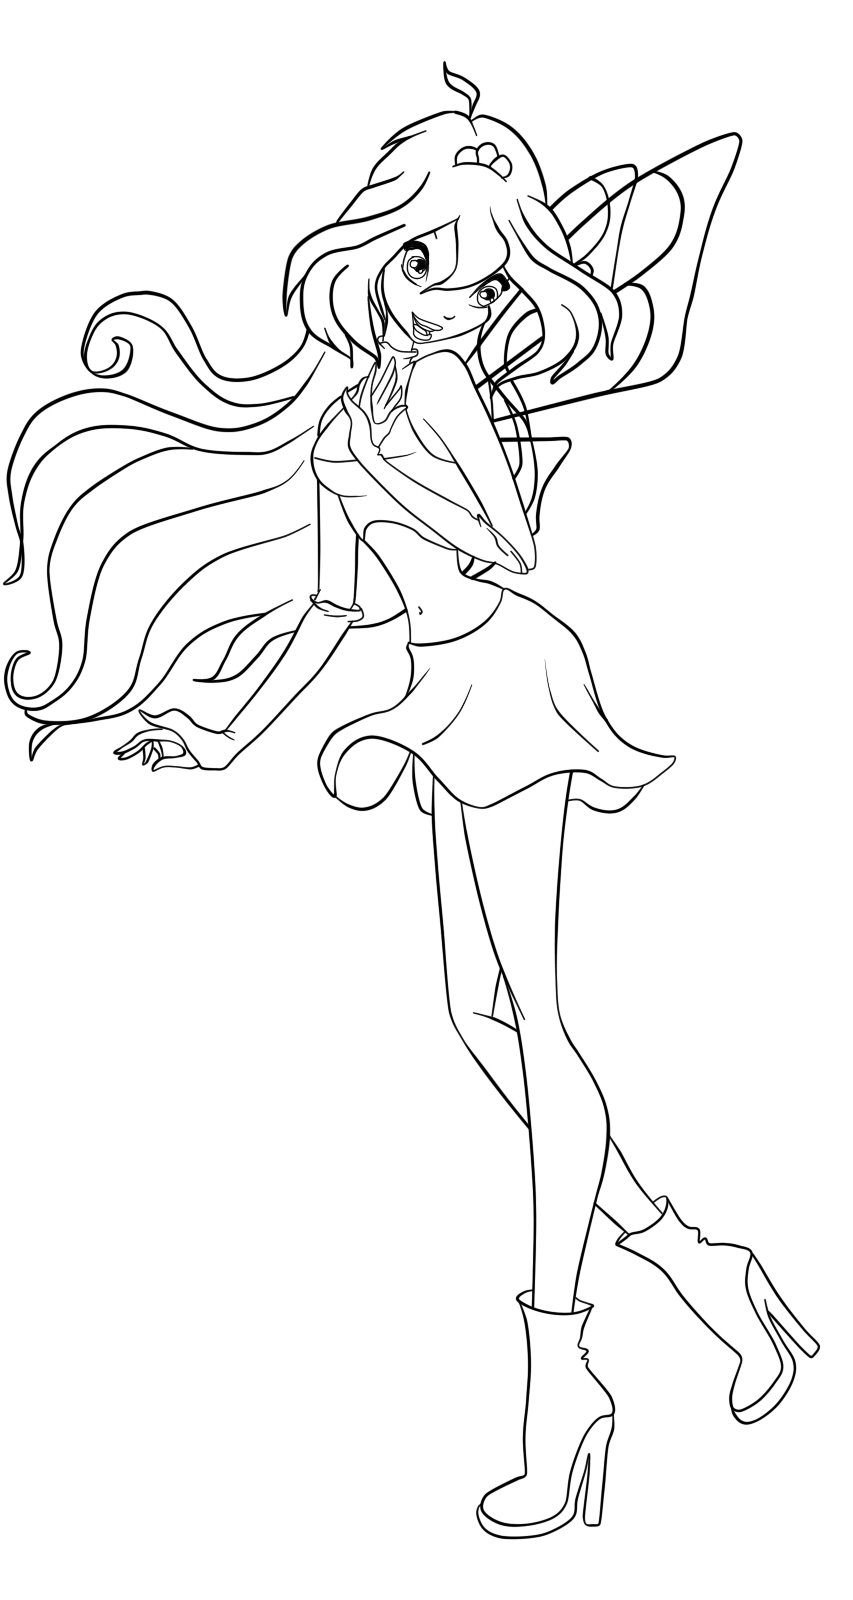 winx club coloring pages bloom bloomix bloom by elfkena on deviantart winx pages coloring bloom club